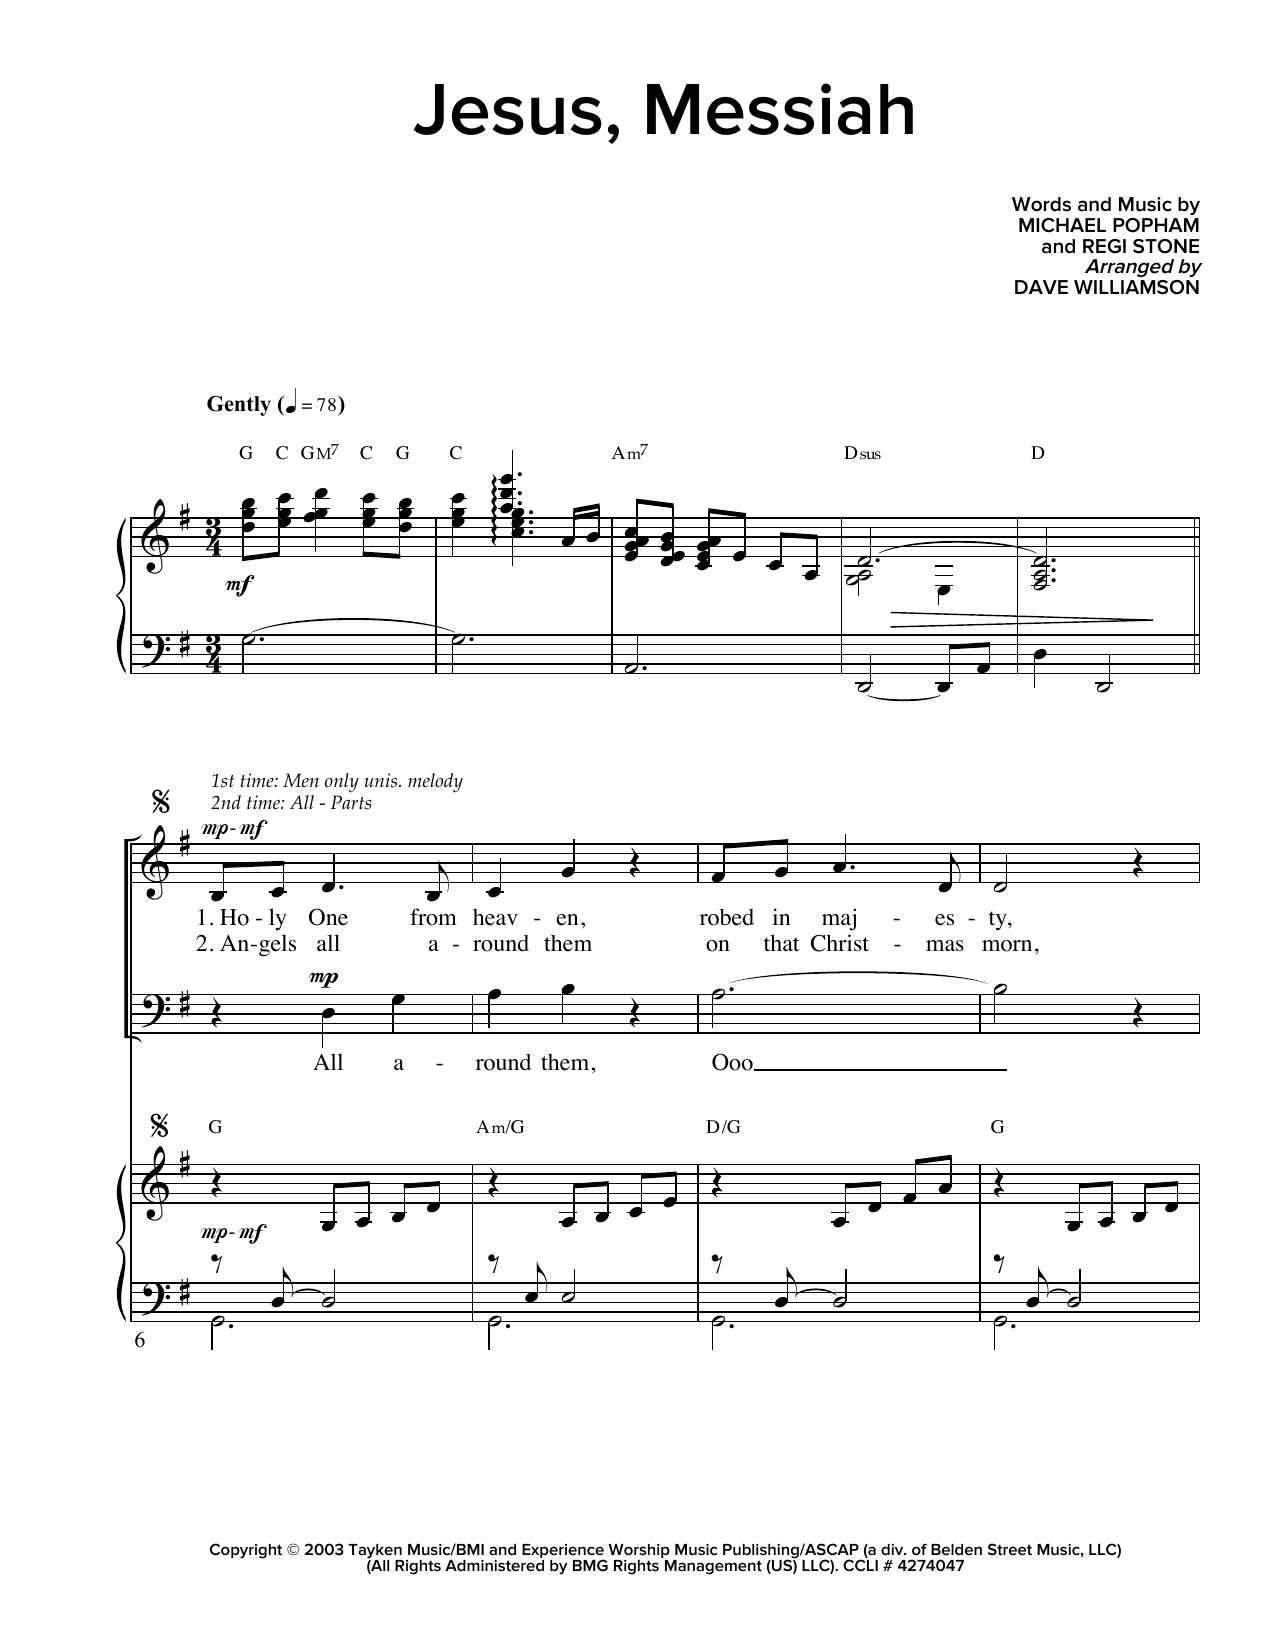 Jesus, Messiah (arr. Dave Williamson) Sheet Music